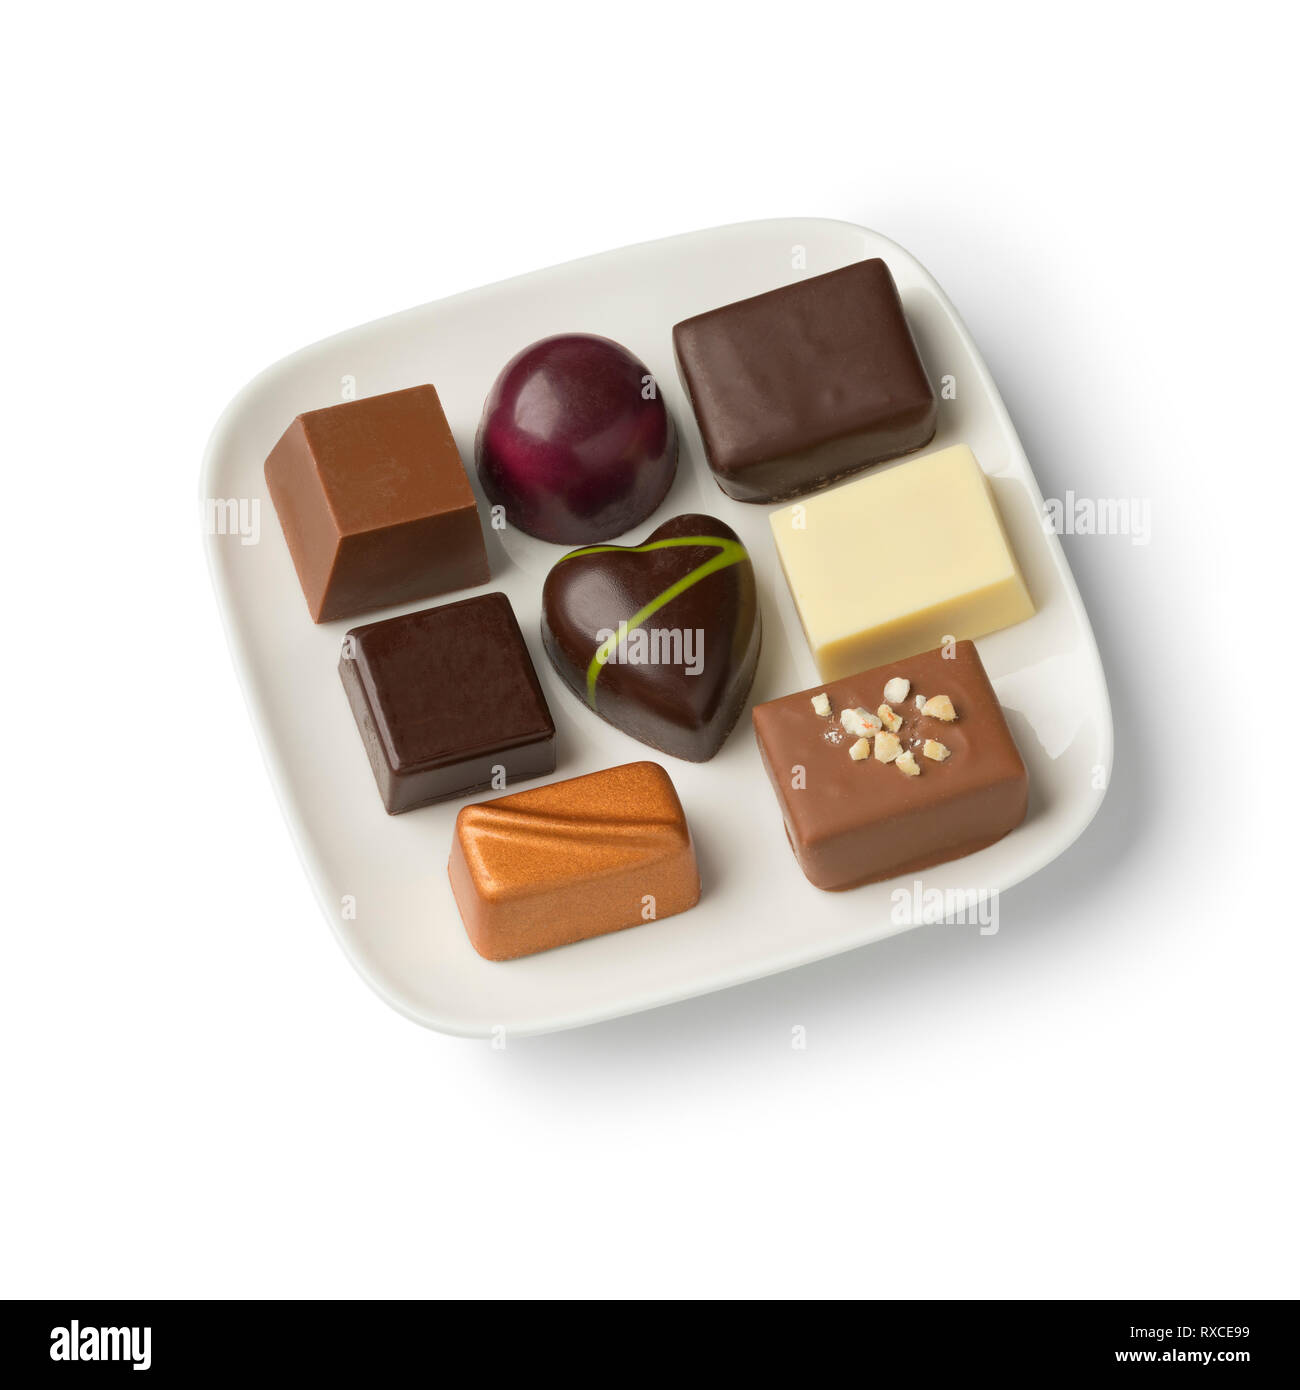 Dish with assorted chocolate bonbons isolated on white background - Stock Image